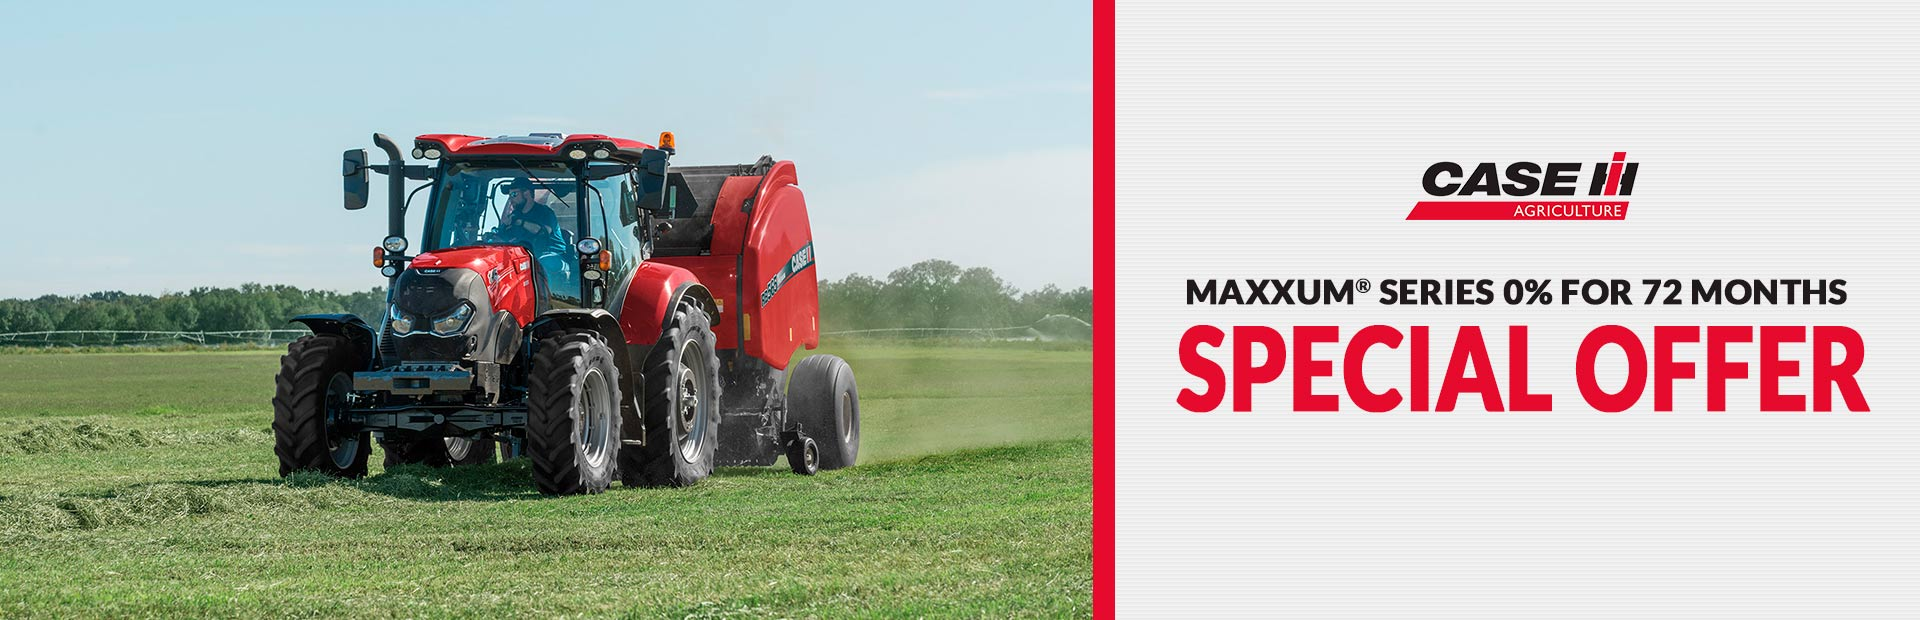 Maxxum® Series 0% for 72 Months Special Offer